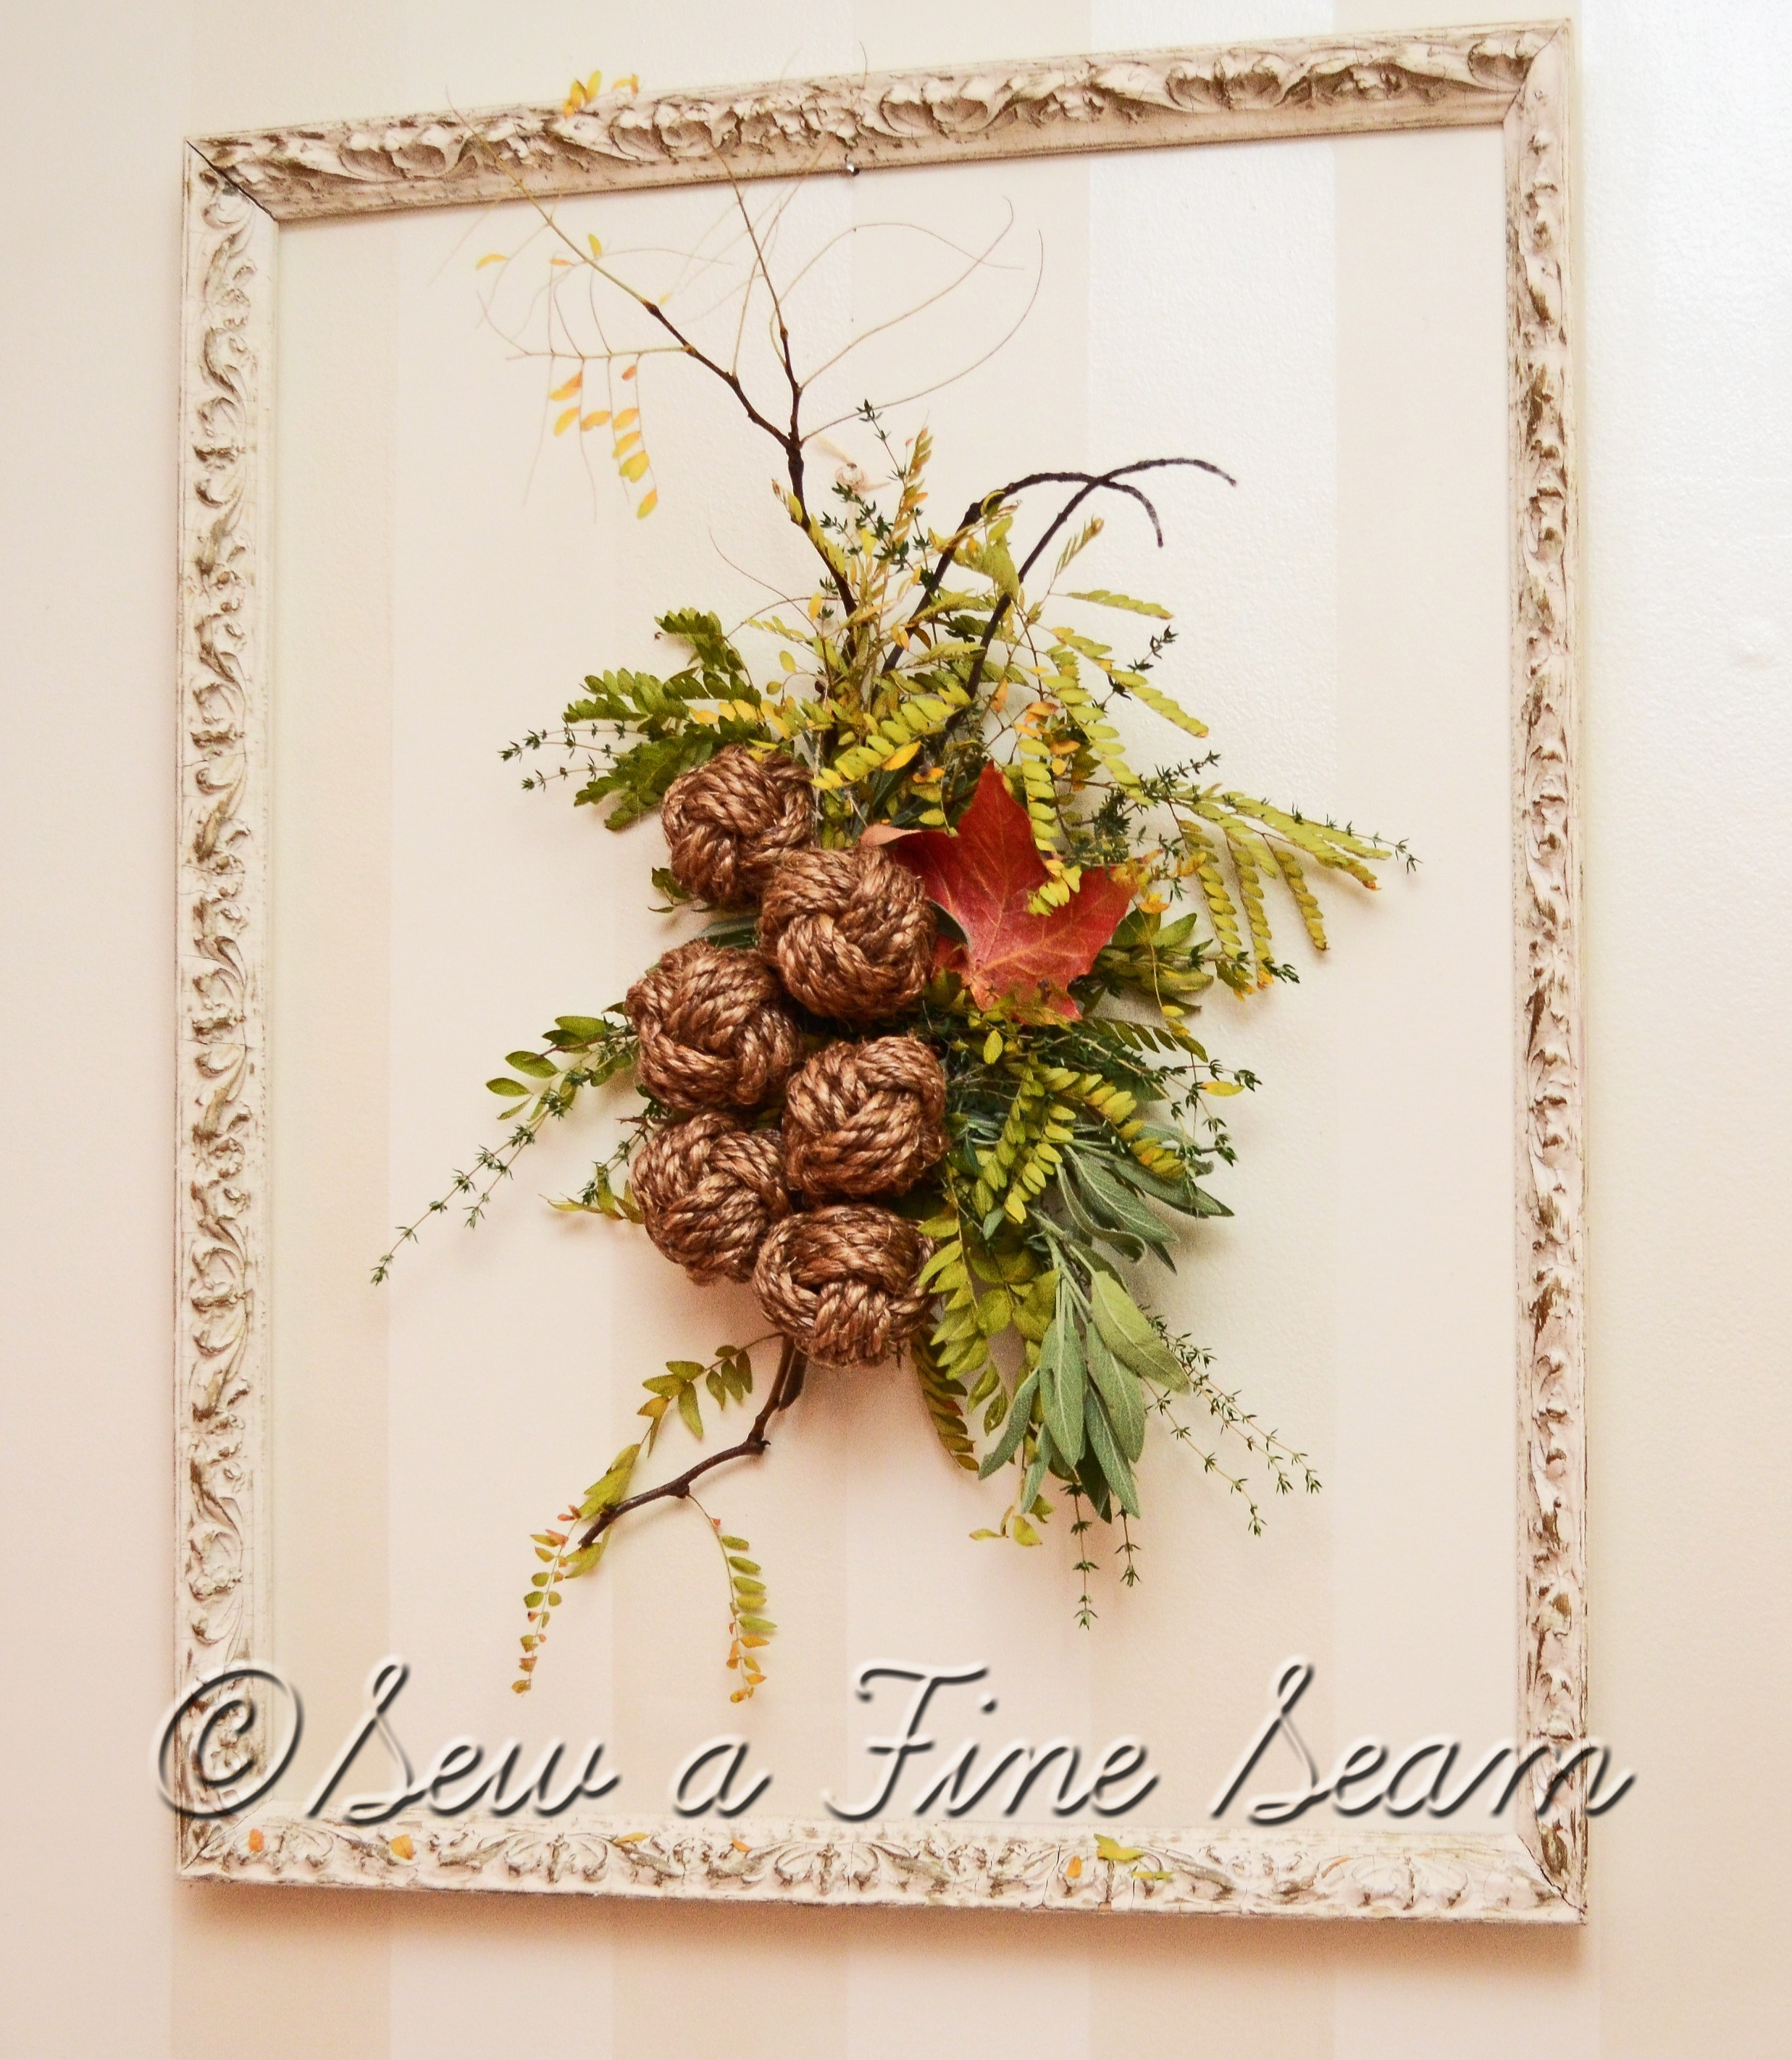 Sticks and Leaves and Flowers and Herbs